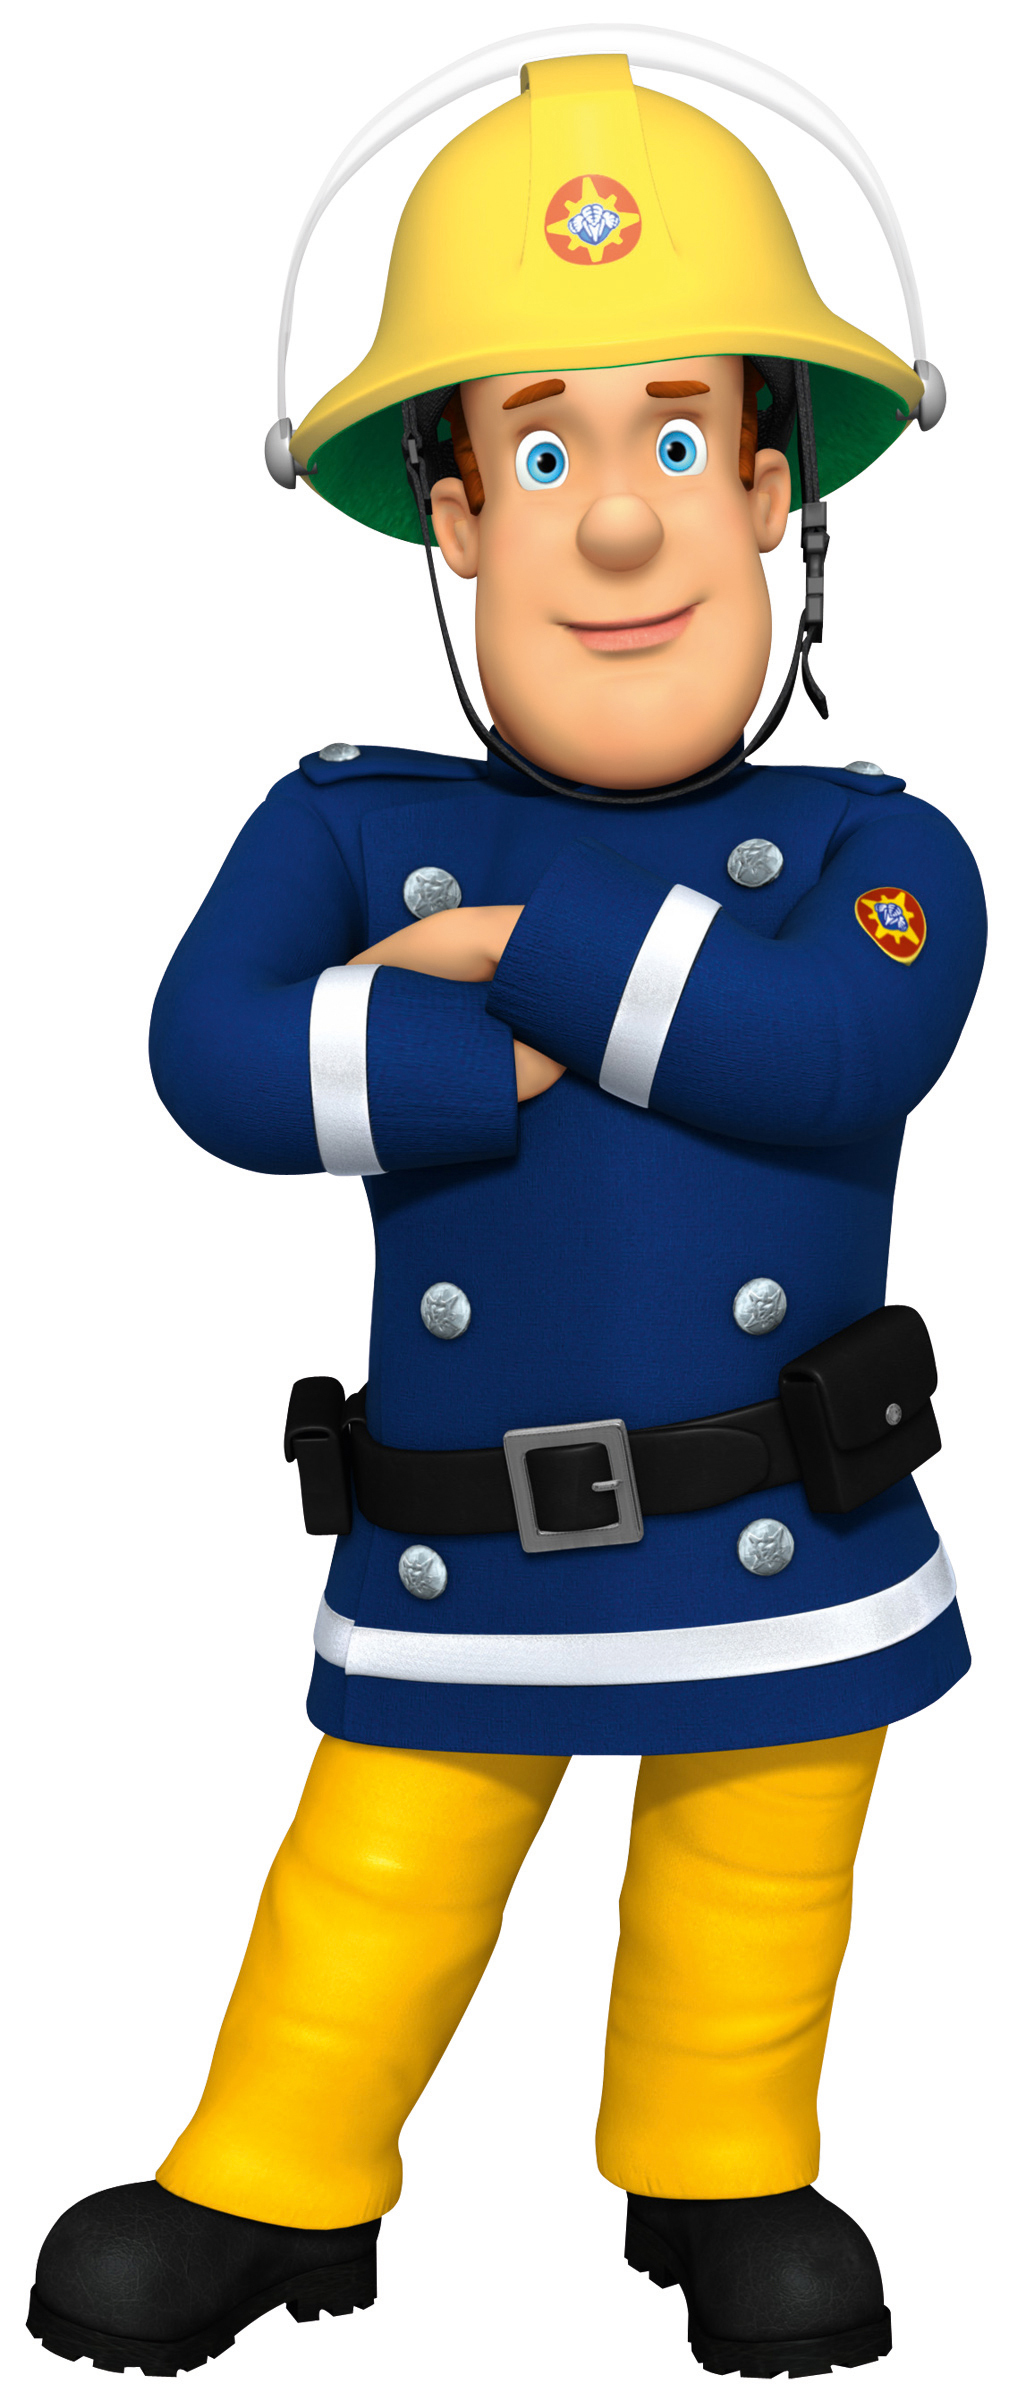 It is an image of Handy Fireman Sam Pic